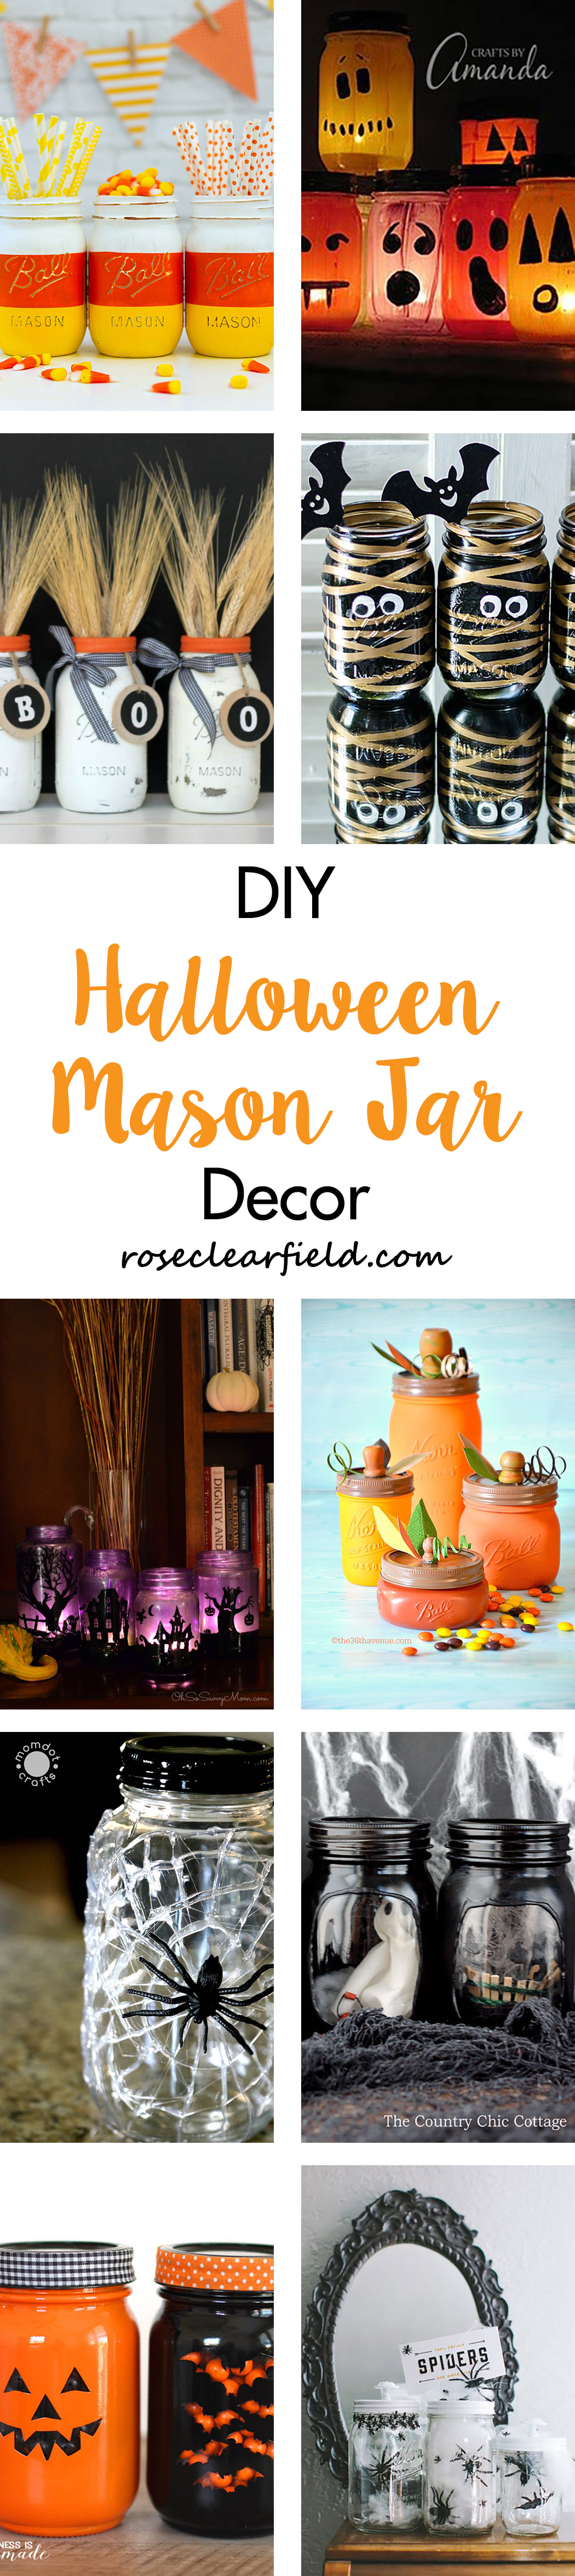 DIY Halloween Mason Jar Decor | https://www.roseclearfield.com